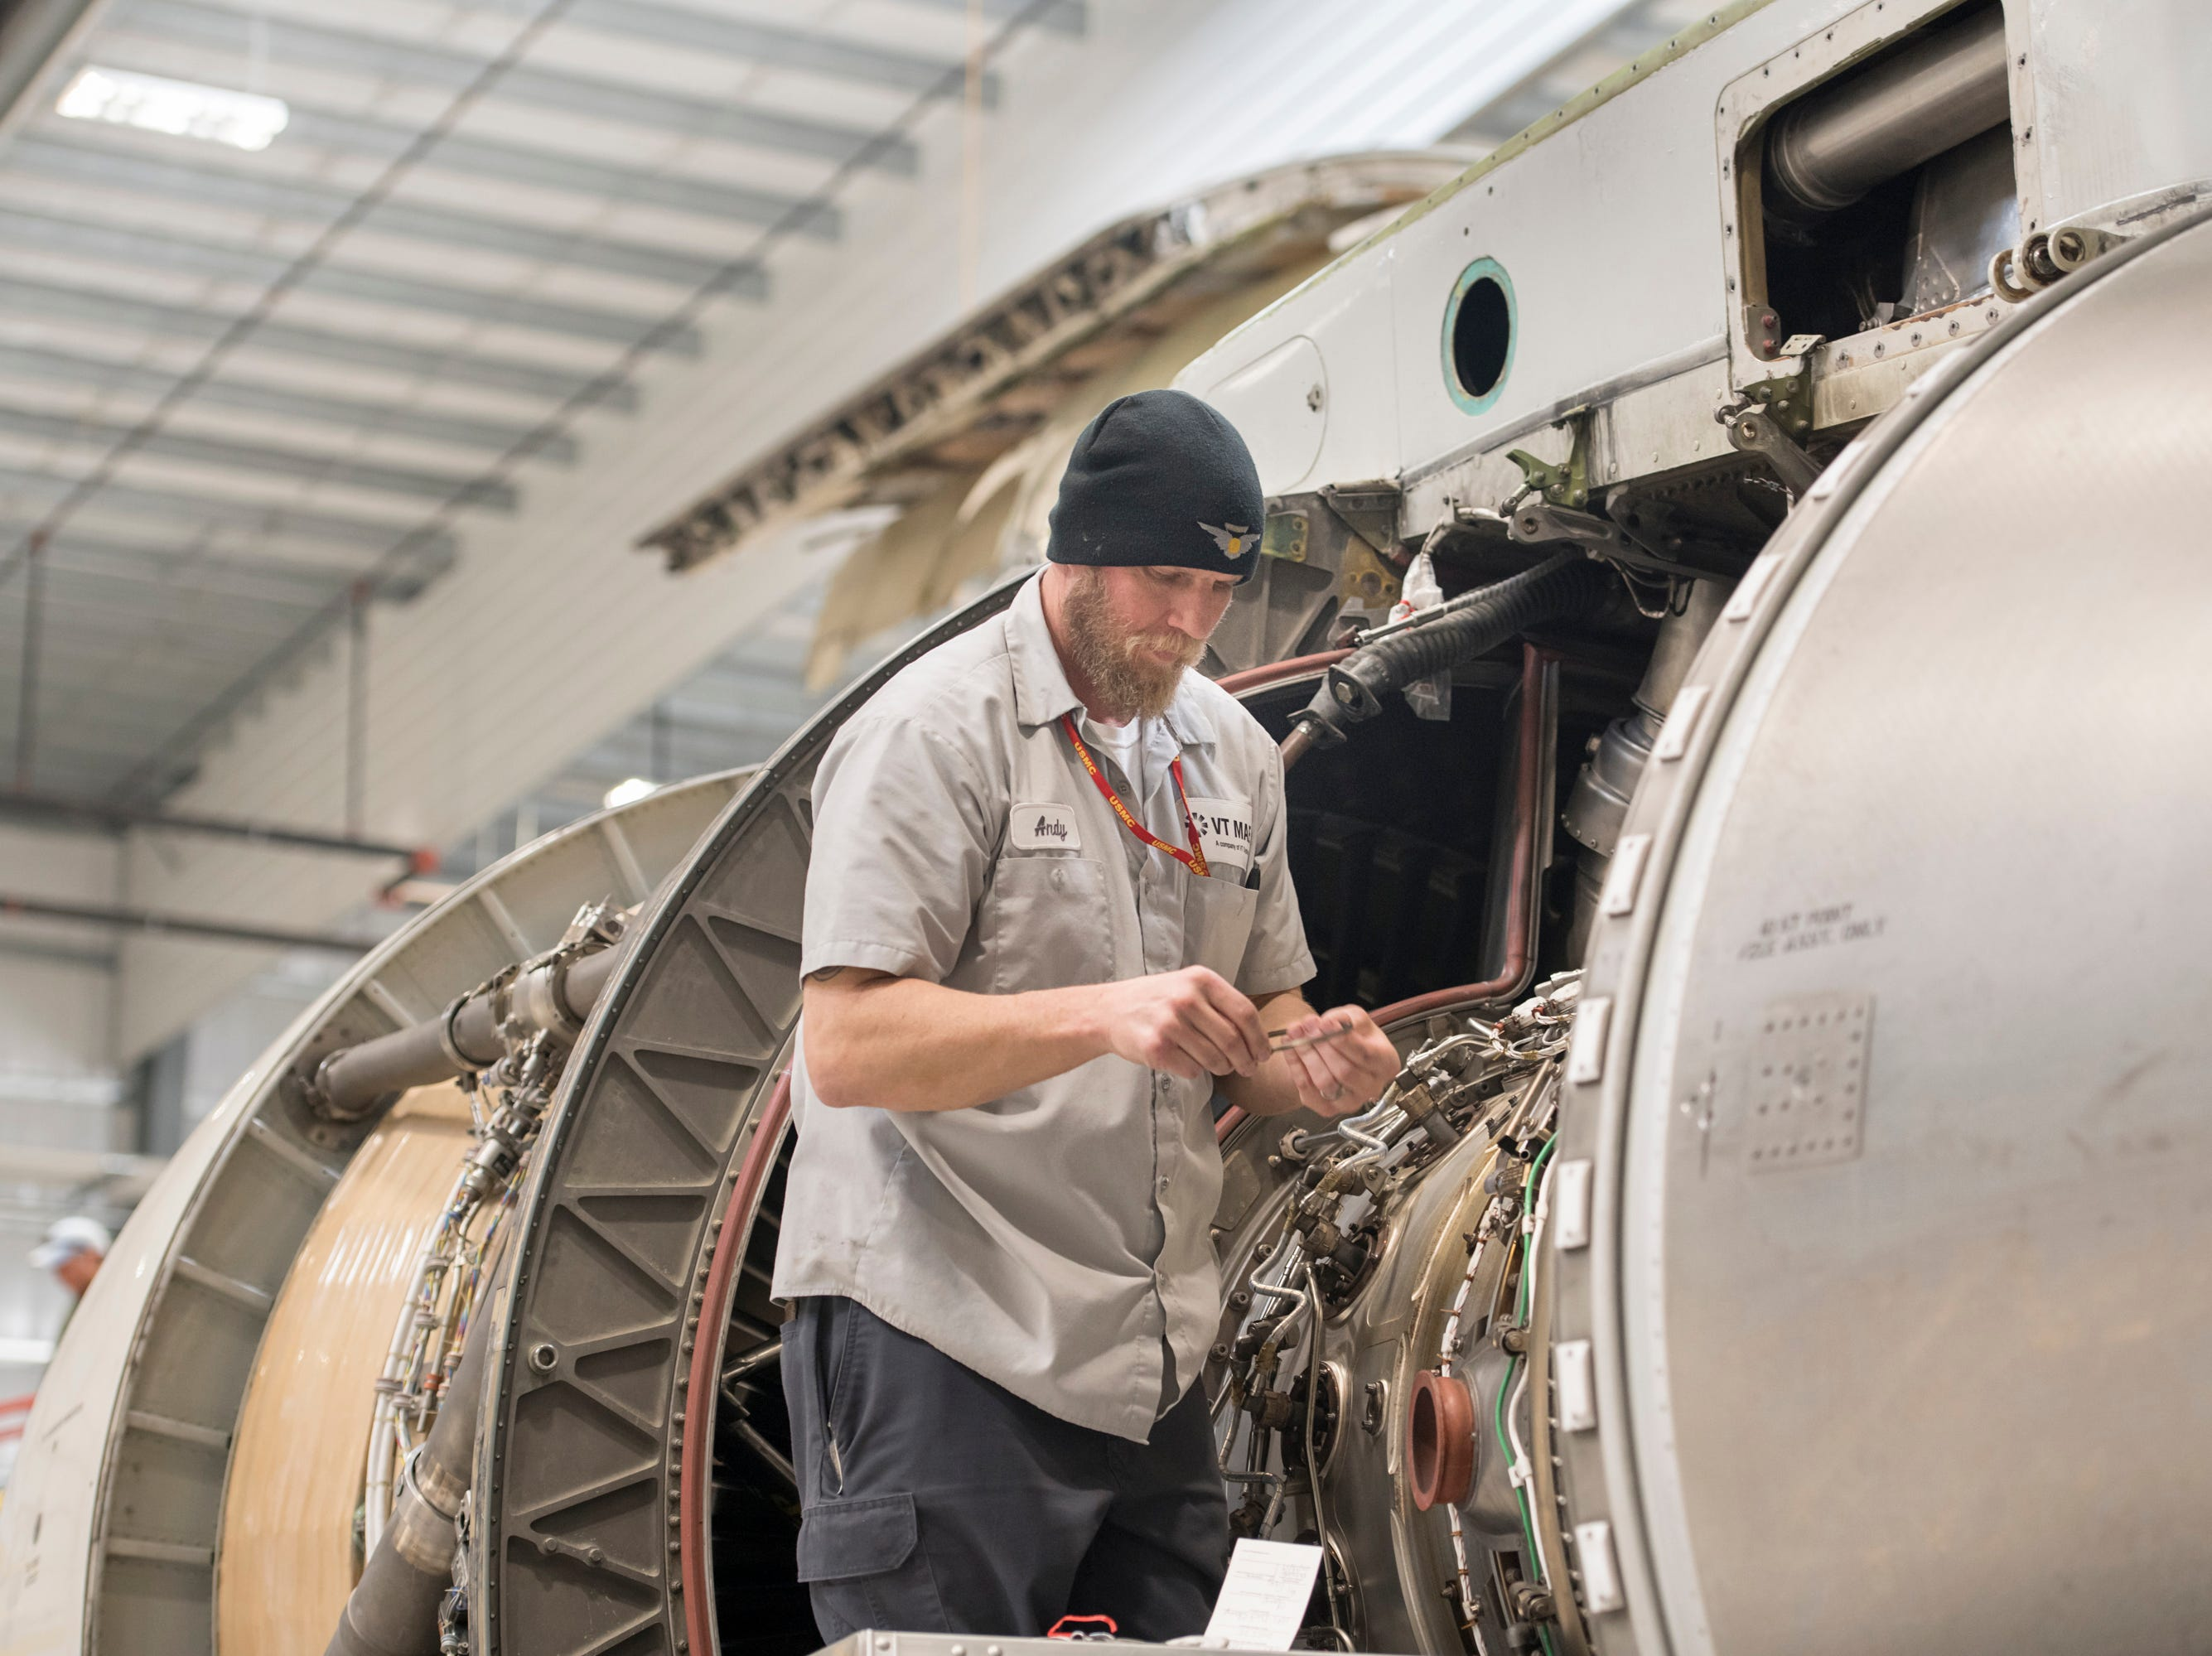 Mechanic Andy Bauer works on a jet engine at ST Engineering at the Pensacola International Airport in Pensacola on Friday, February 8, 2019.